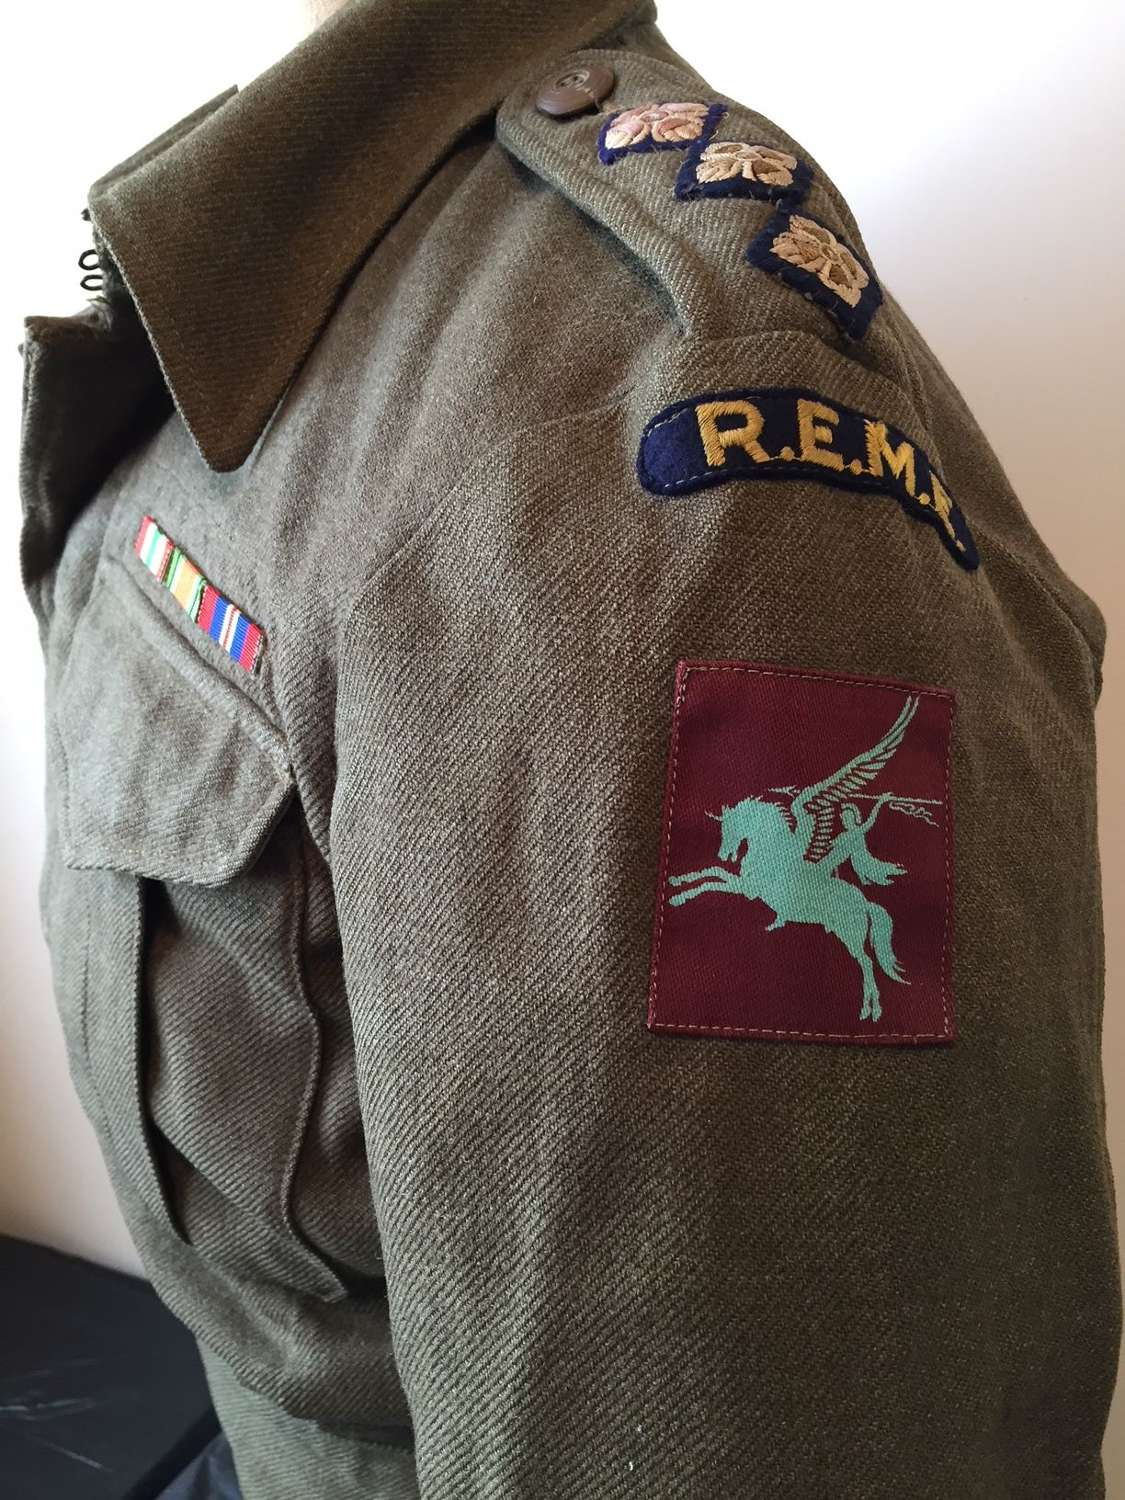 WW2 Airborne REME uniform and medals